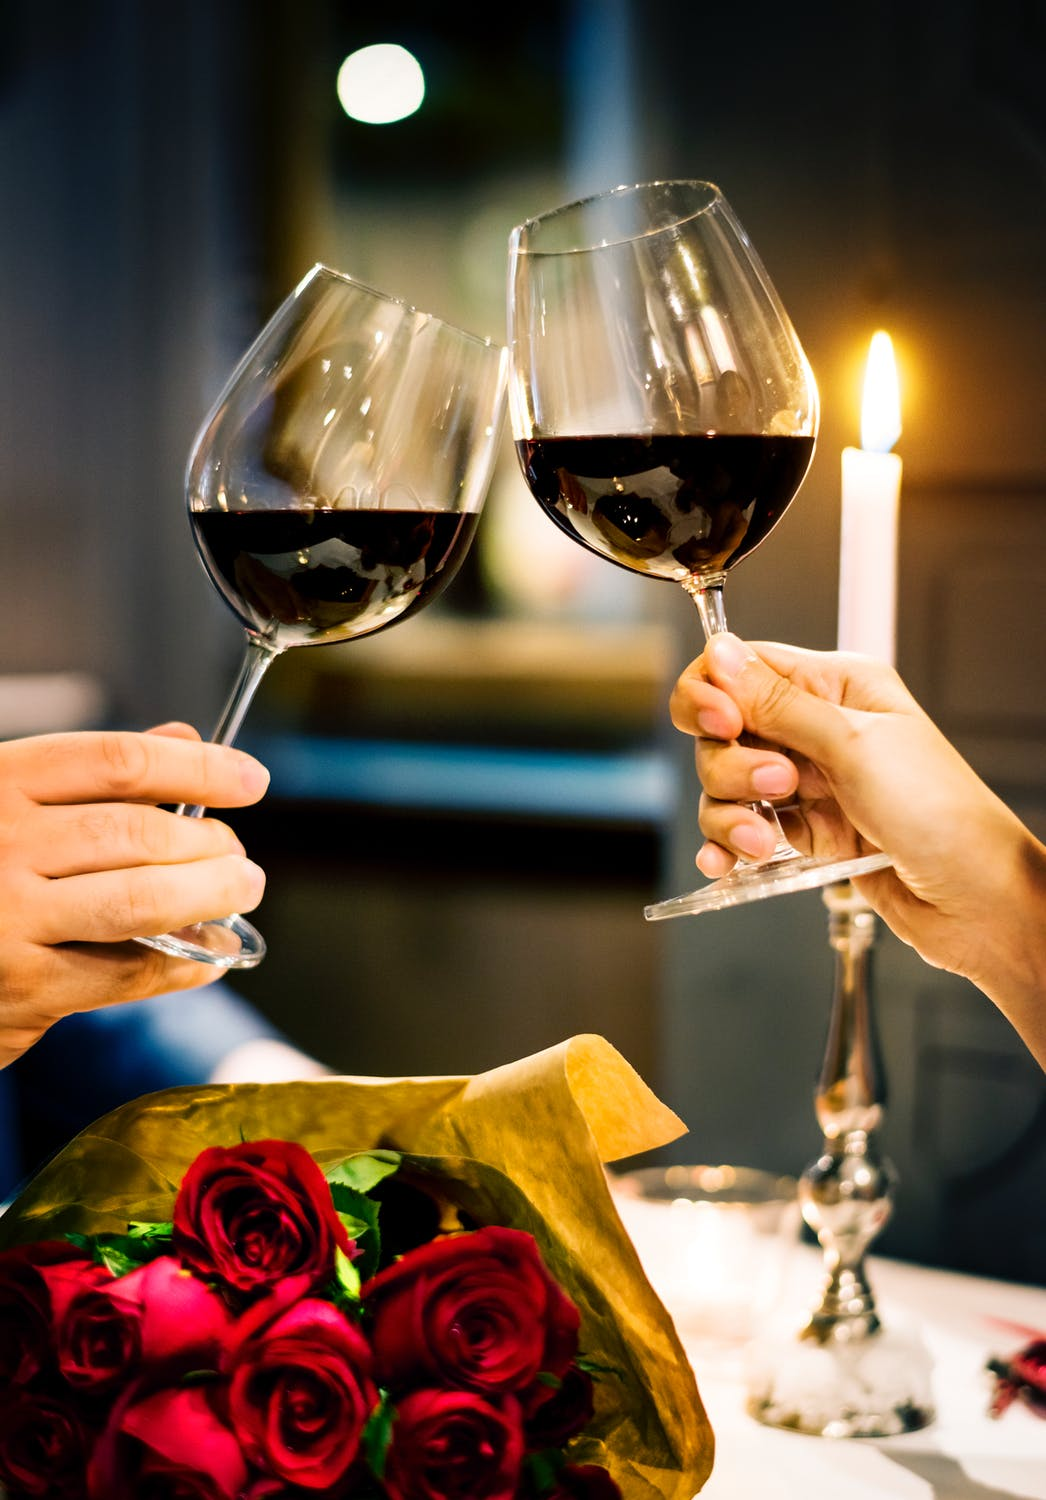 10 Date Ideas for Teens to Impress their Dates